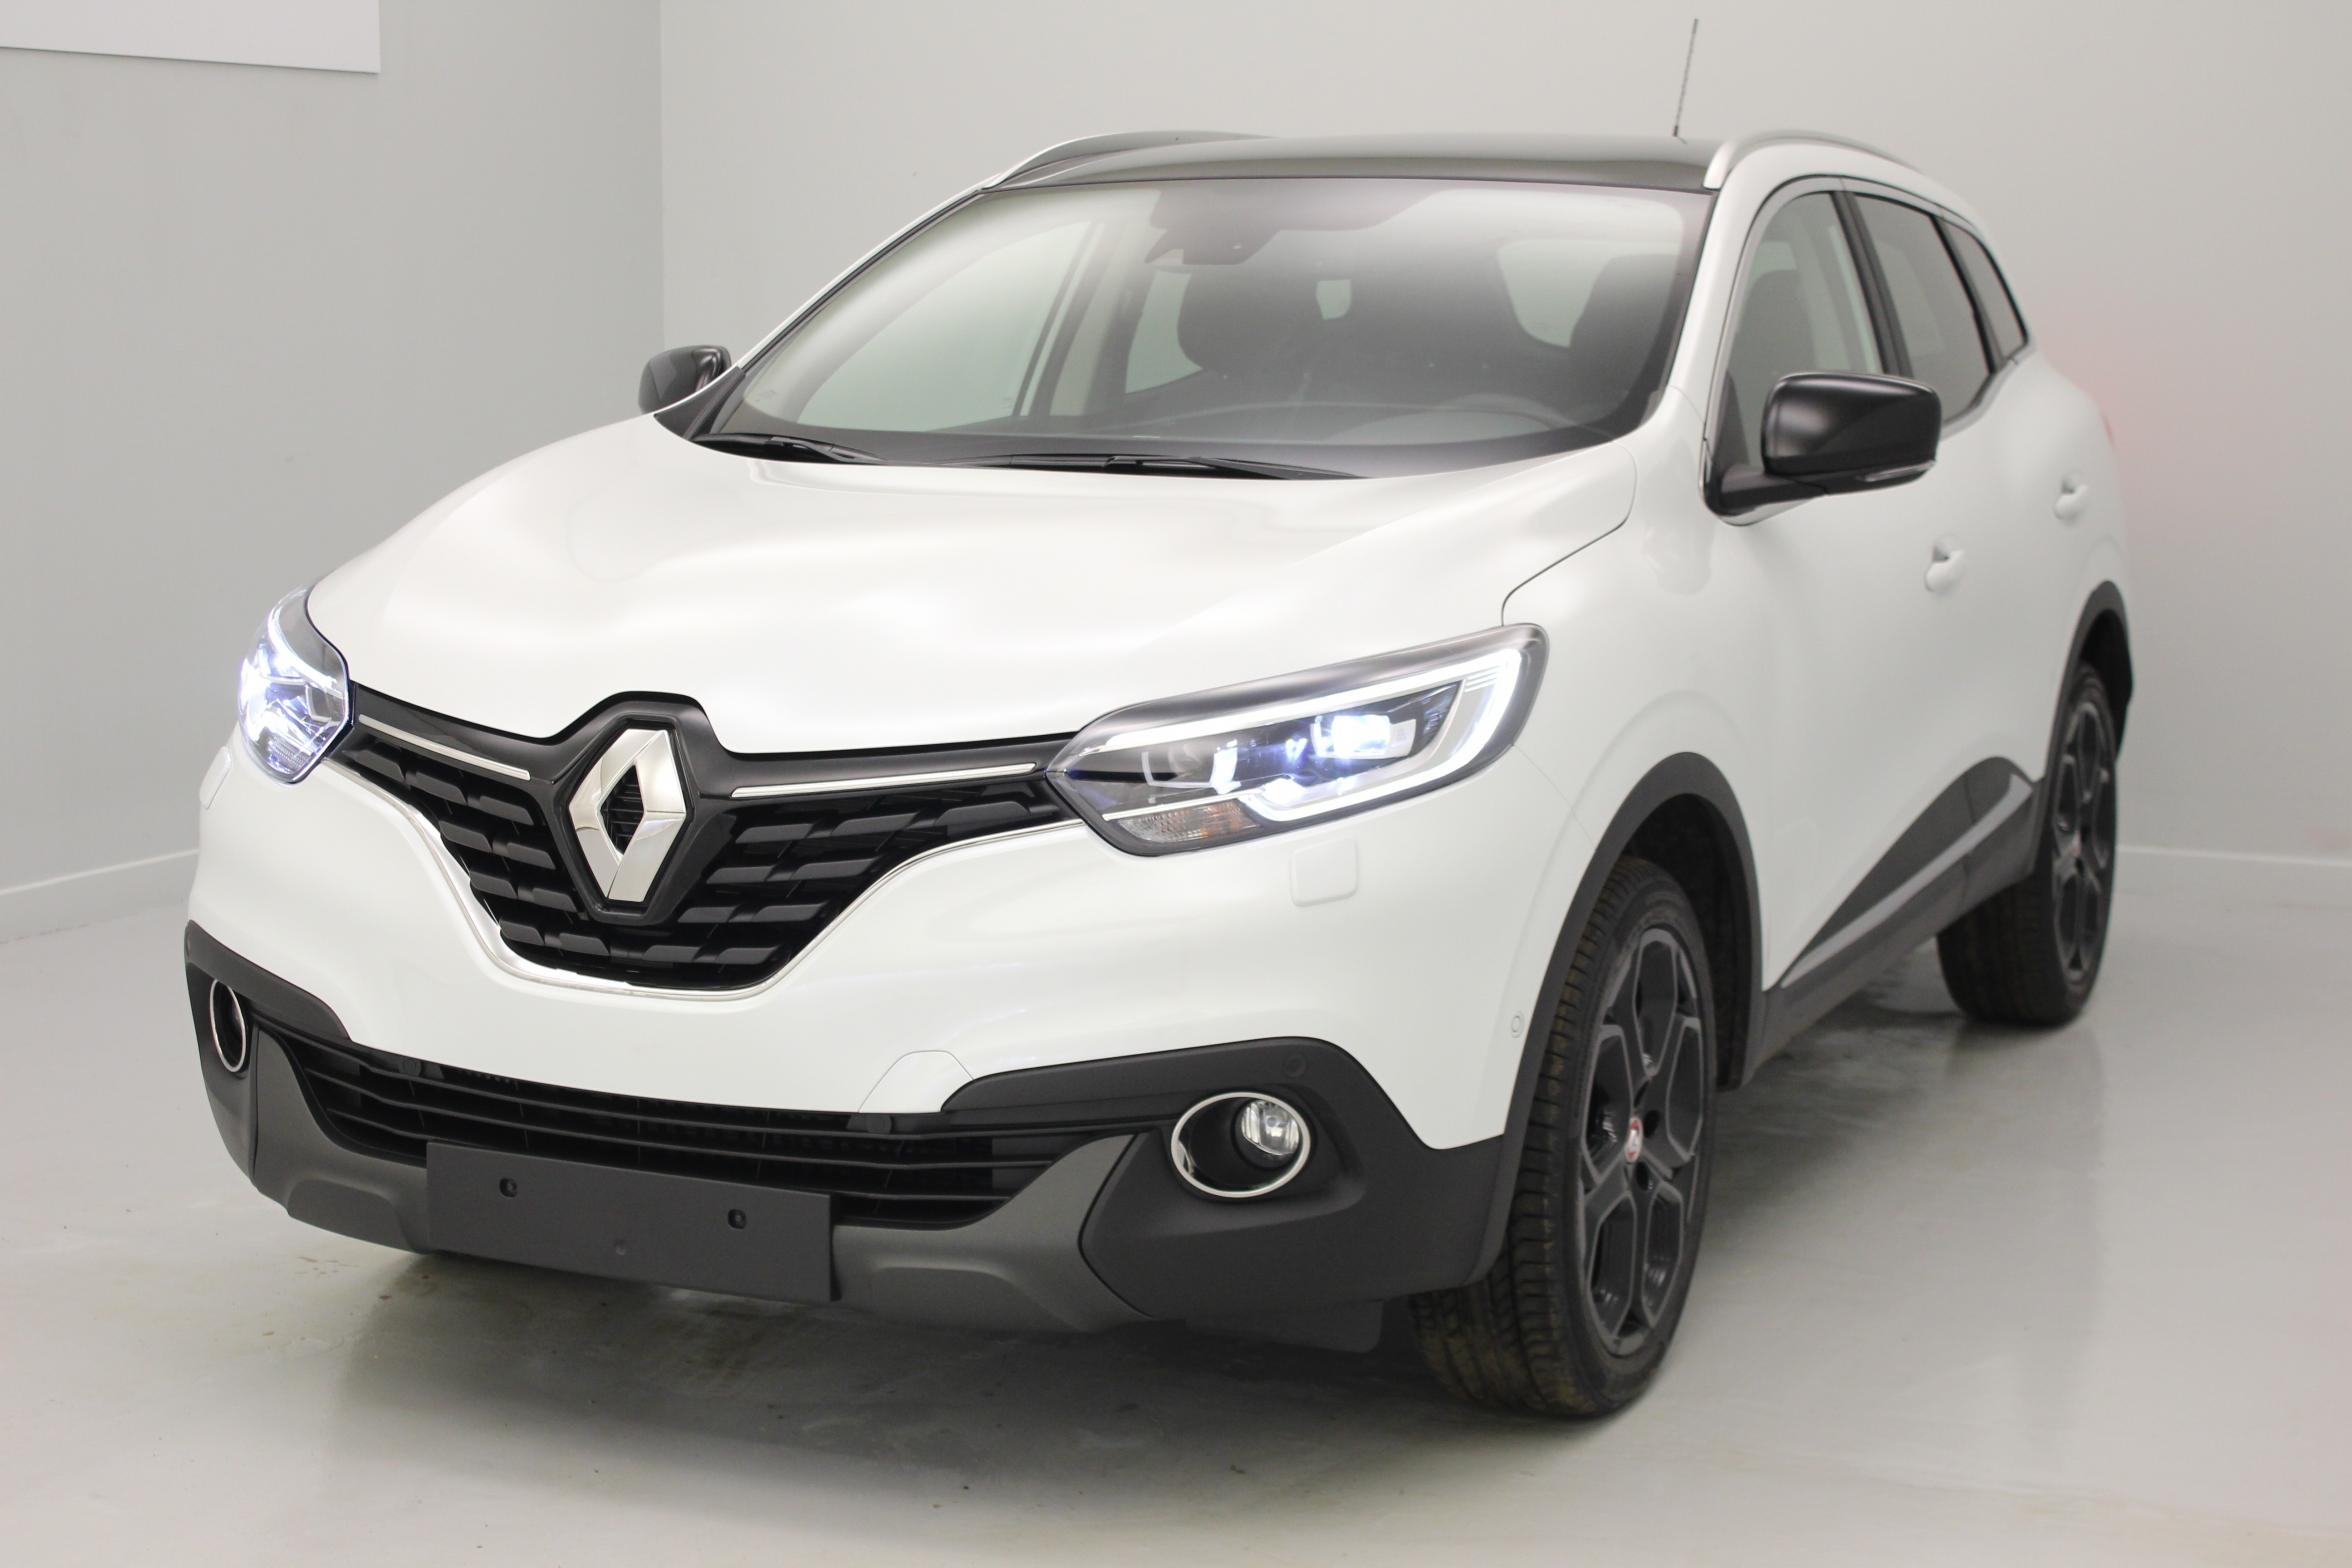 renault kadjar 7 places exclu nouveau renault koleos 2016 plus qu 39 un kadjar 7 places photo 2. Black Bedroom Furniture Sets. Home Design Ideas